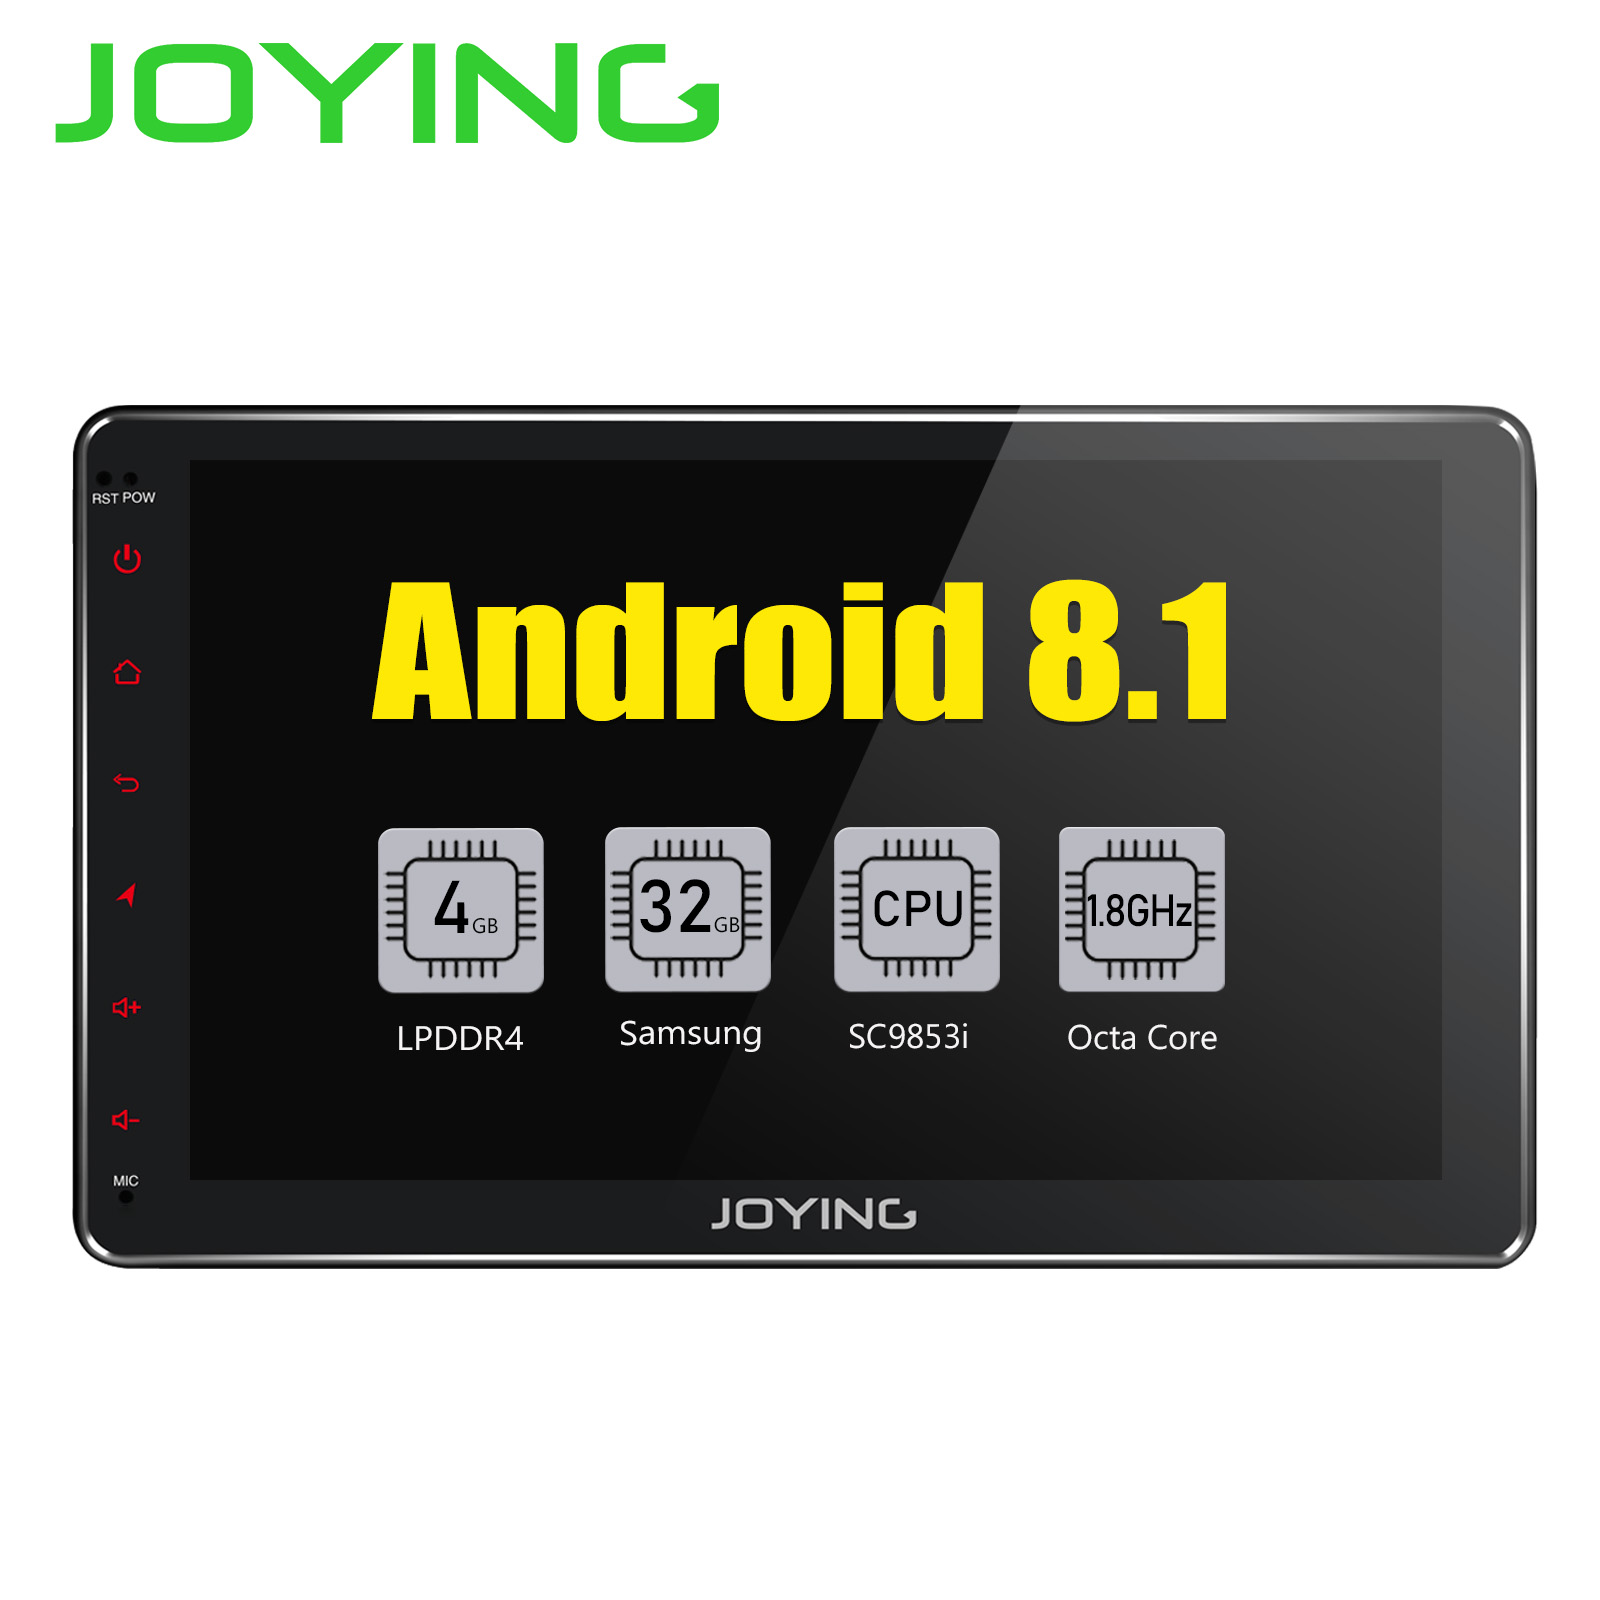 JOYING Android 8.1 2 din Autoradio Stereo Multimedia Player GPS Radio 10.1'' IPS HD Screen Head Unit with DSP Octa Core 4GB RAM